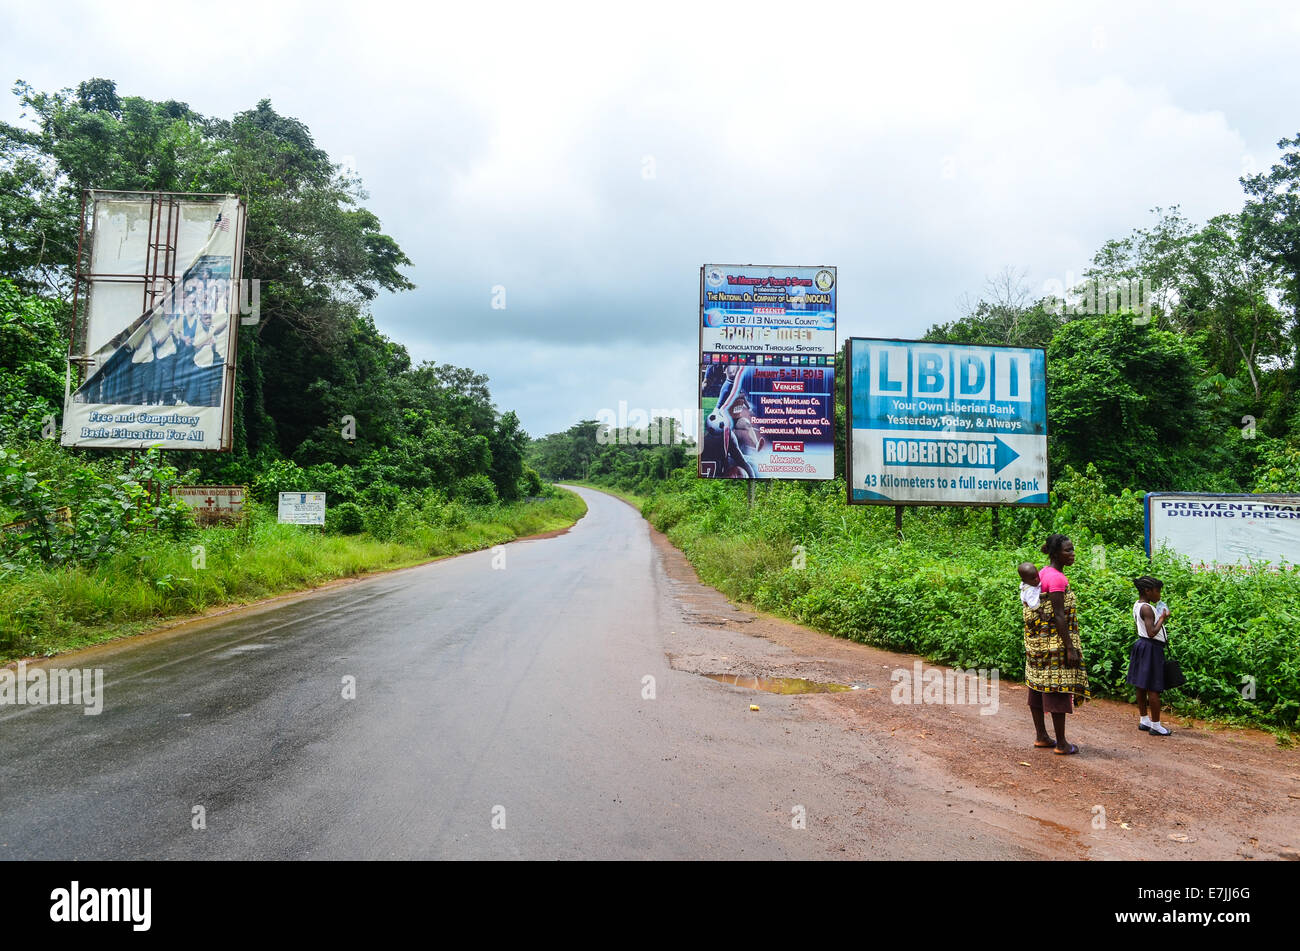 Junction between two main roads in Liberia, to Monrovia (straight) or Robertsport (right) - Stock Image